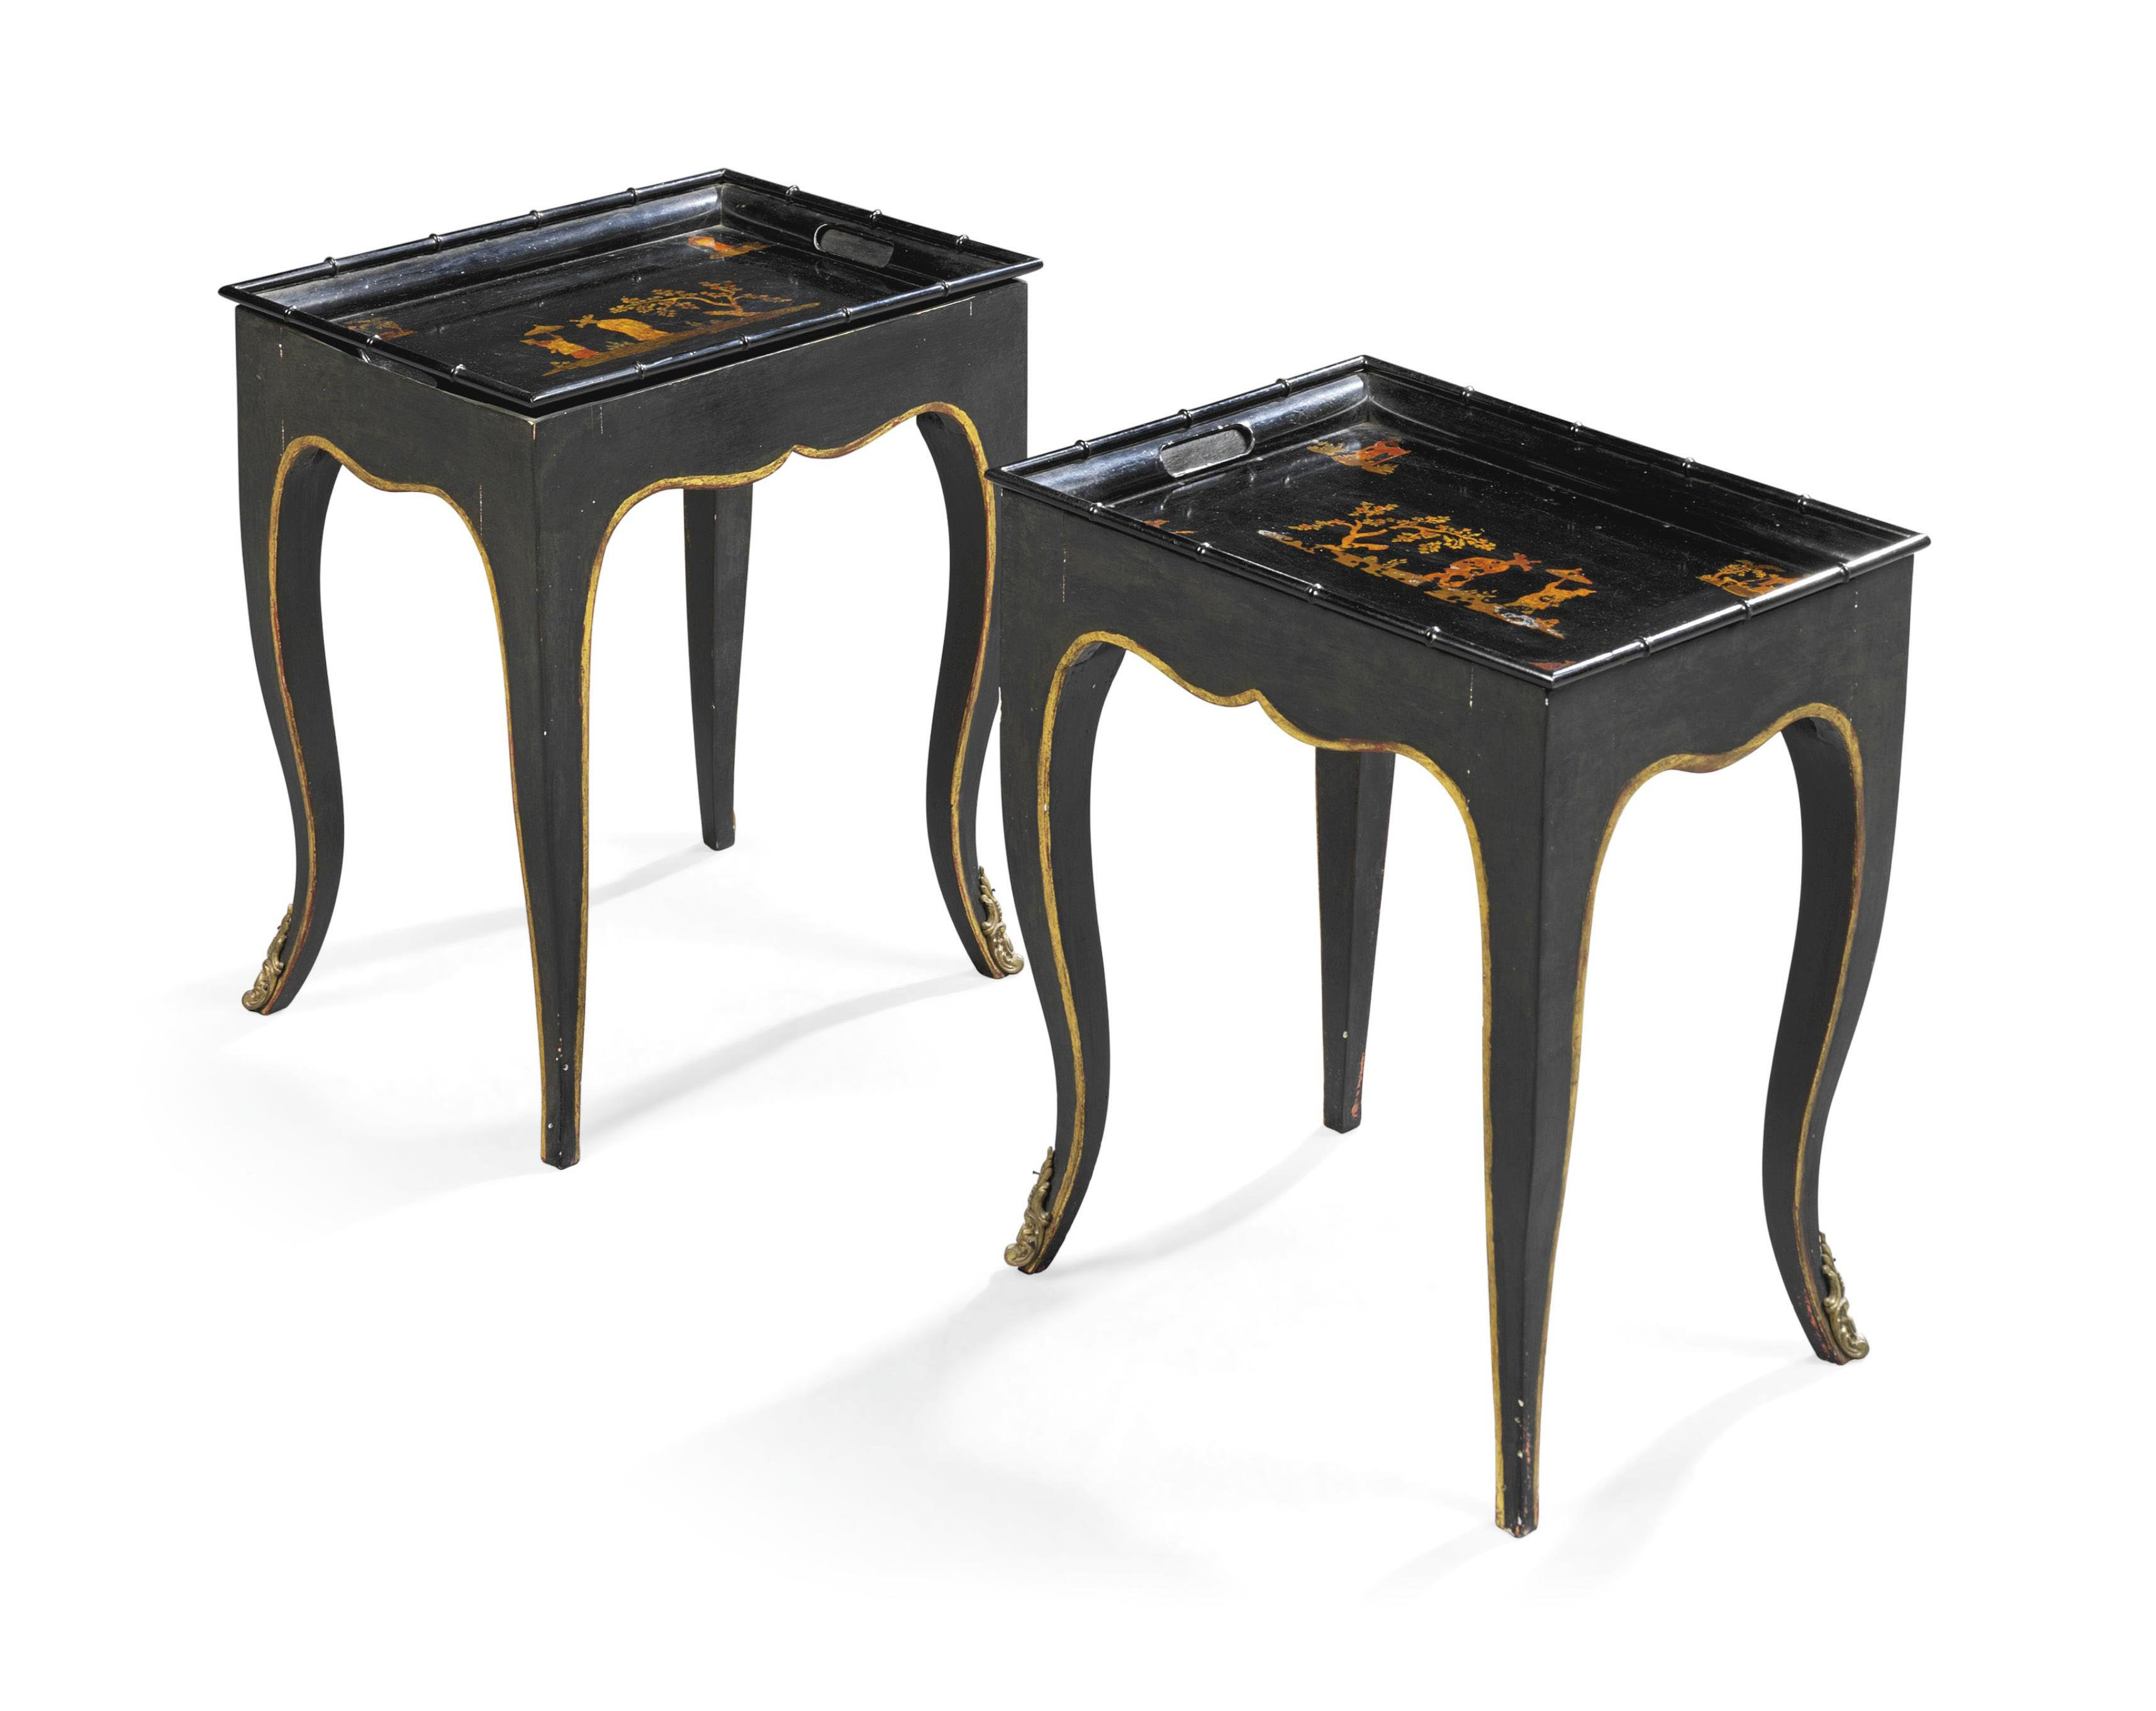 A PAIR OF LOUIS XV-STYLE PARCEL-GILT AND BLACK-PAINTED TOLE TRAYS-ON-STANDS